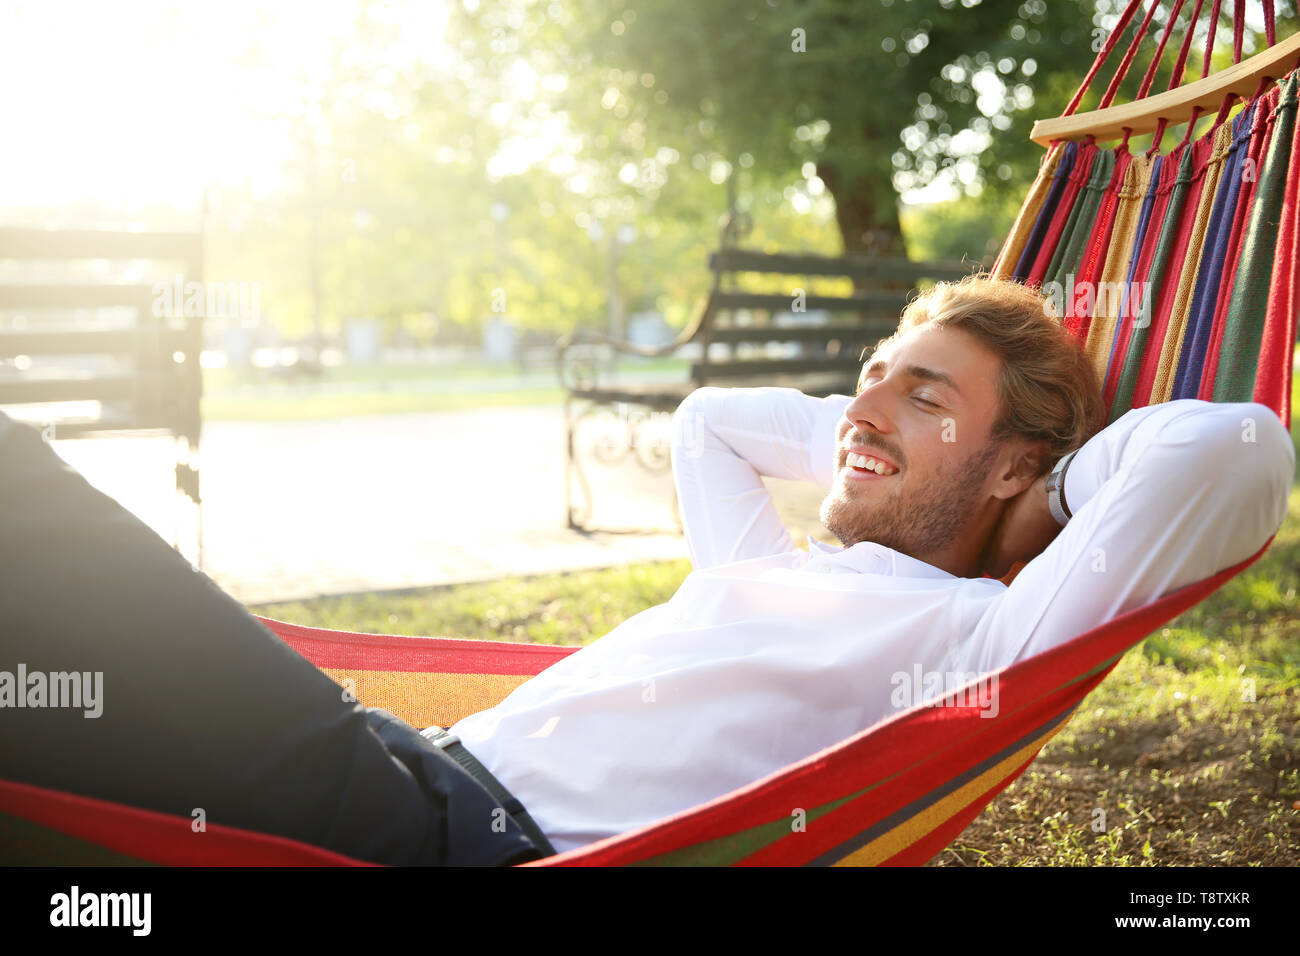 Handsome young businessman resting in hammock outdoors - Stock Image